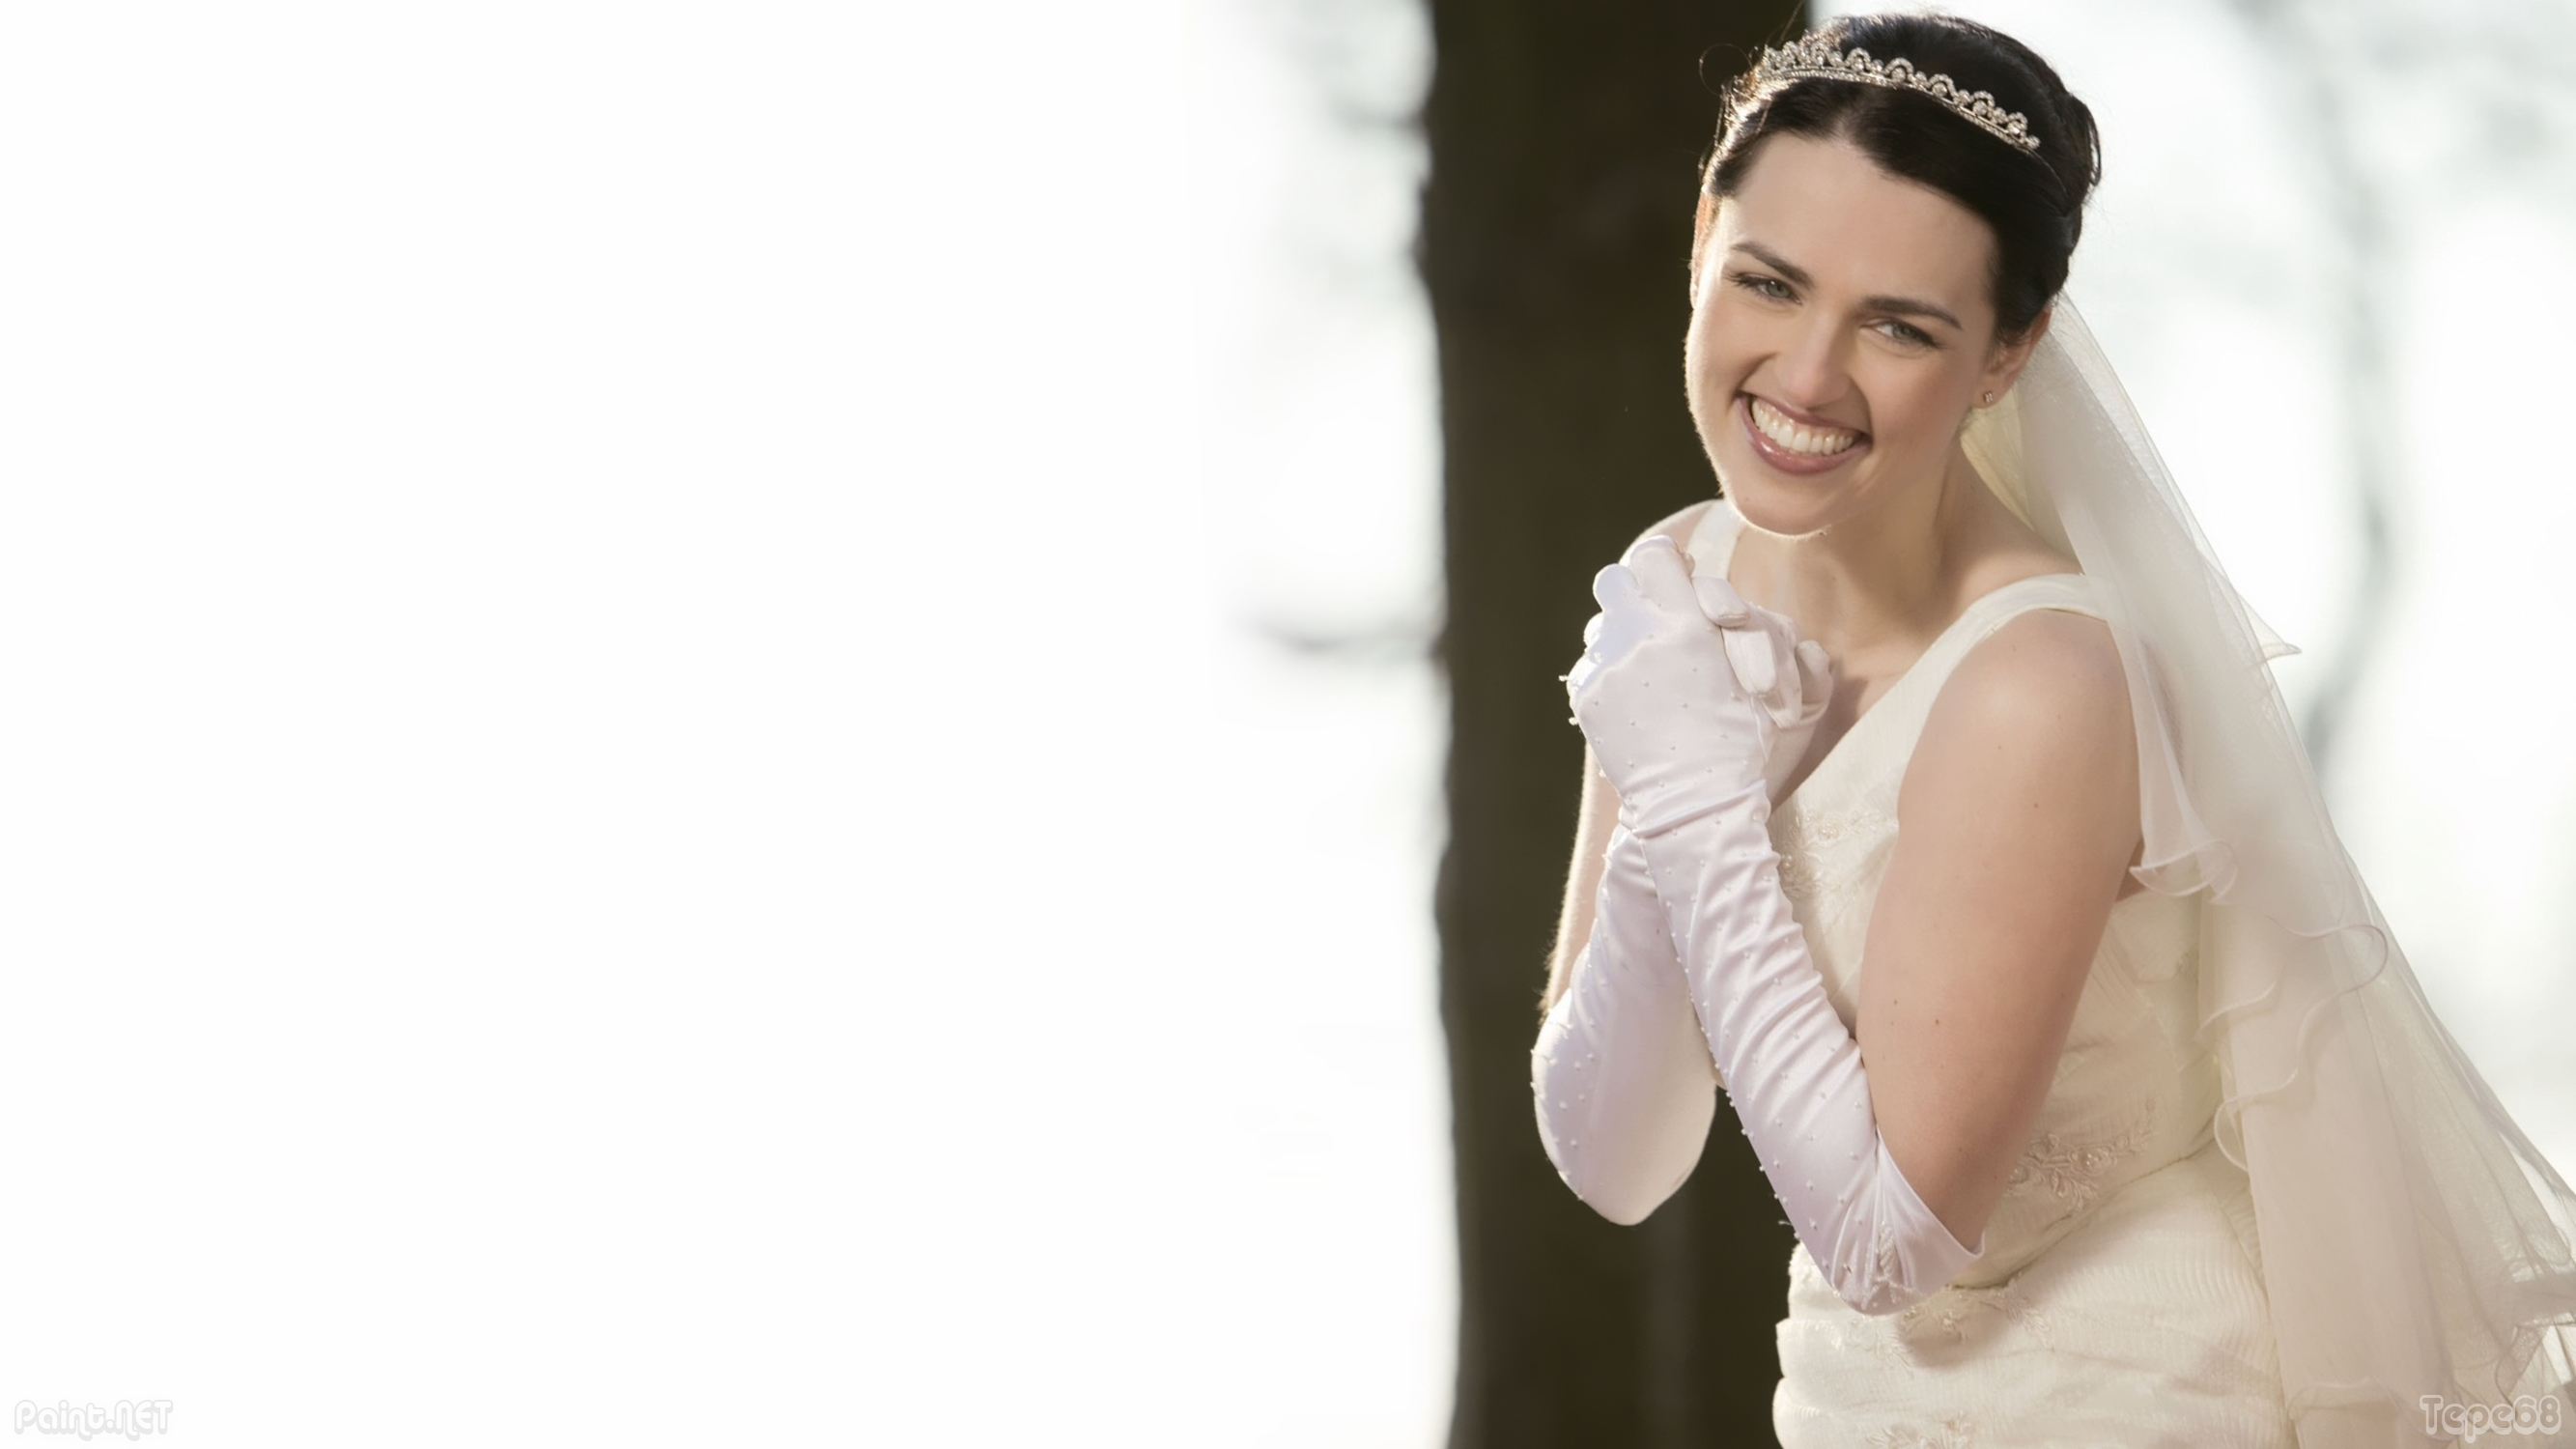 Katie Mcgrath High Definition Wallpapers